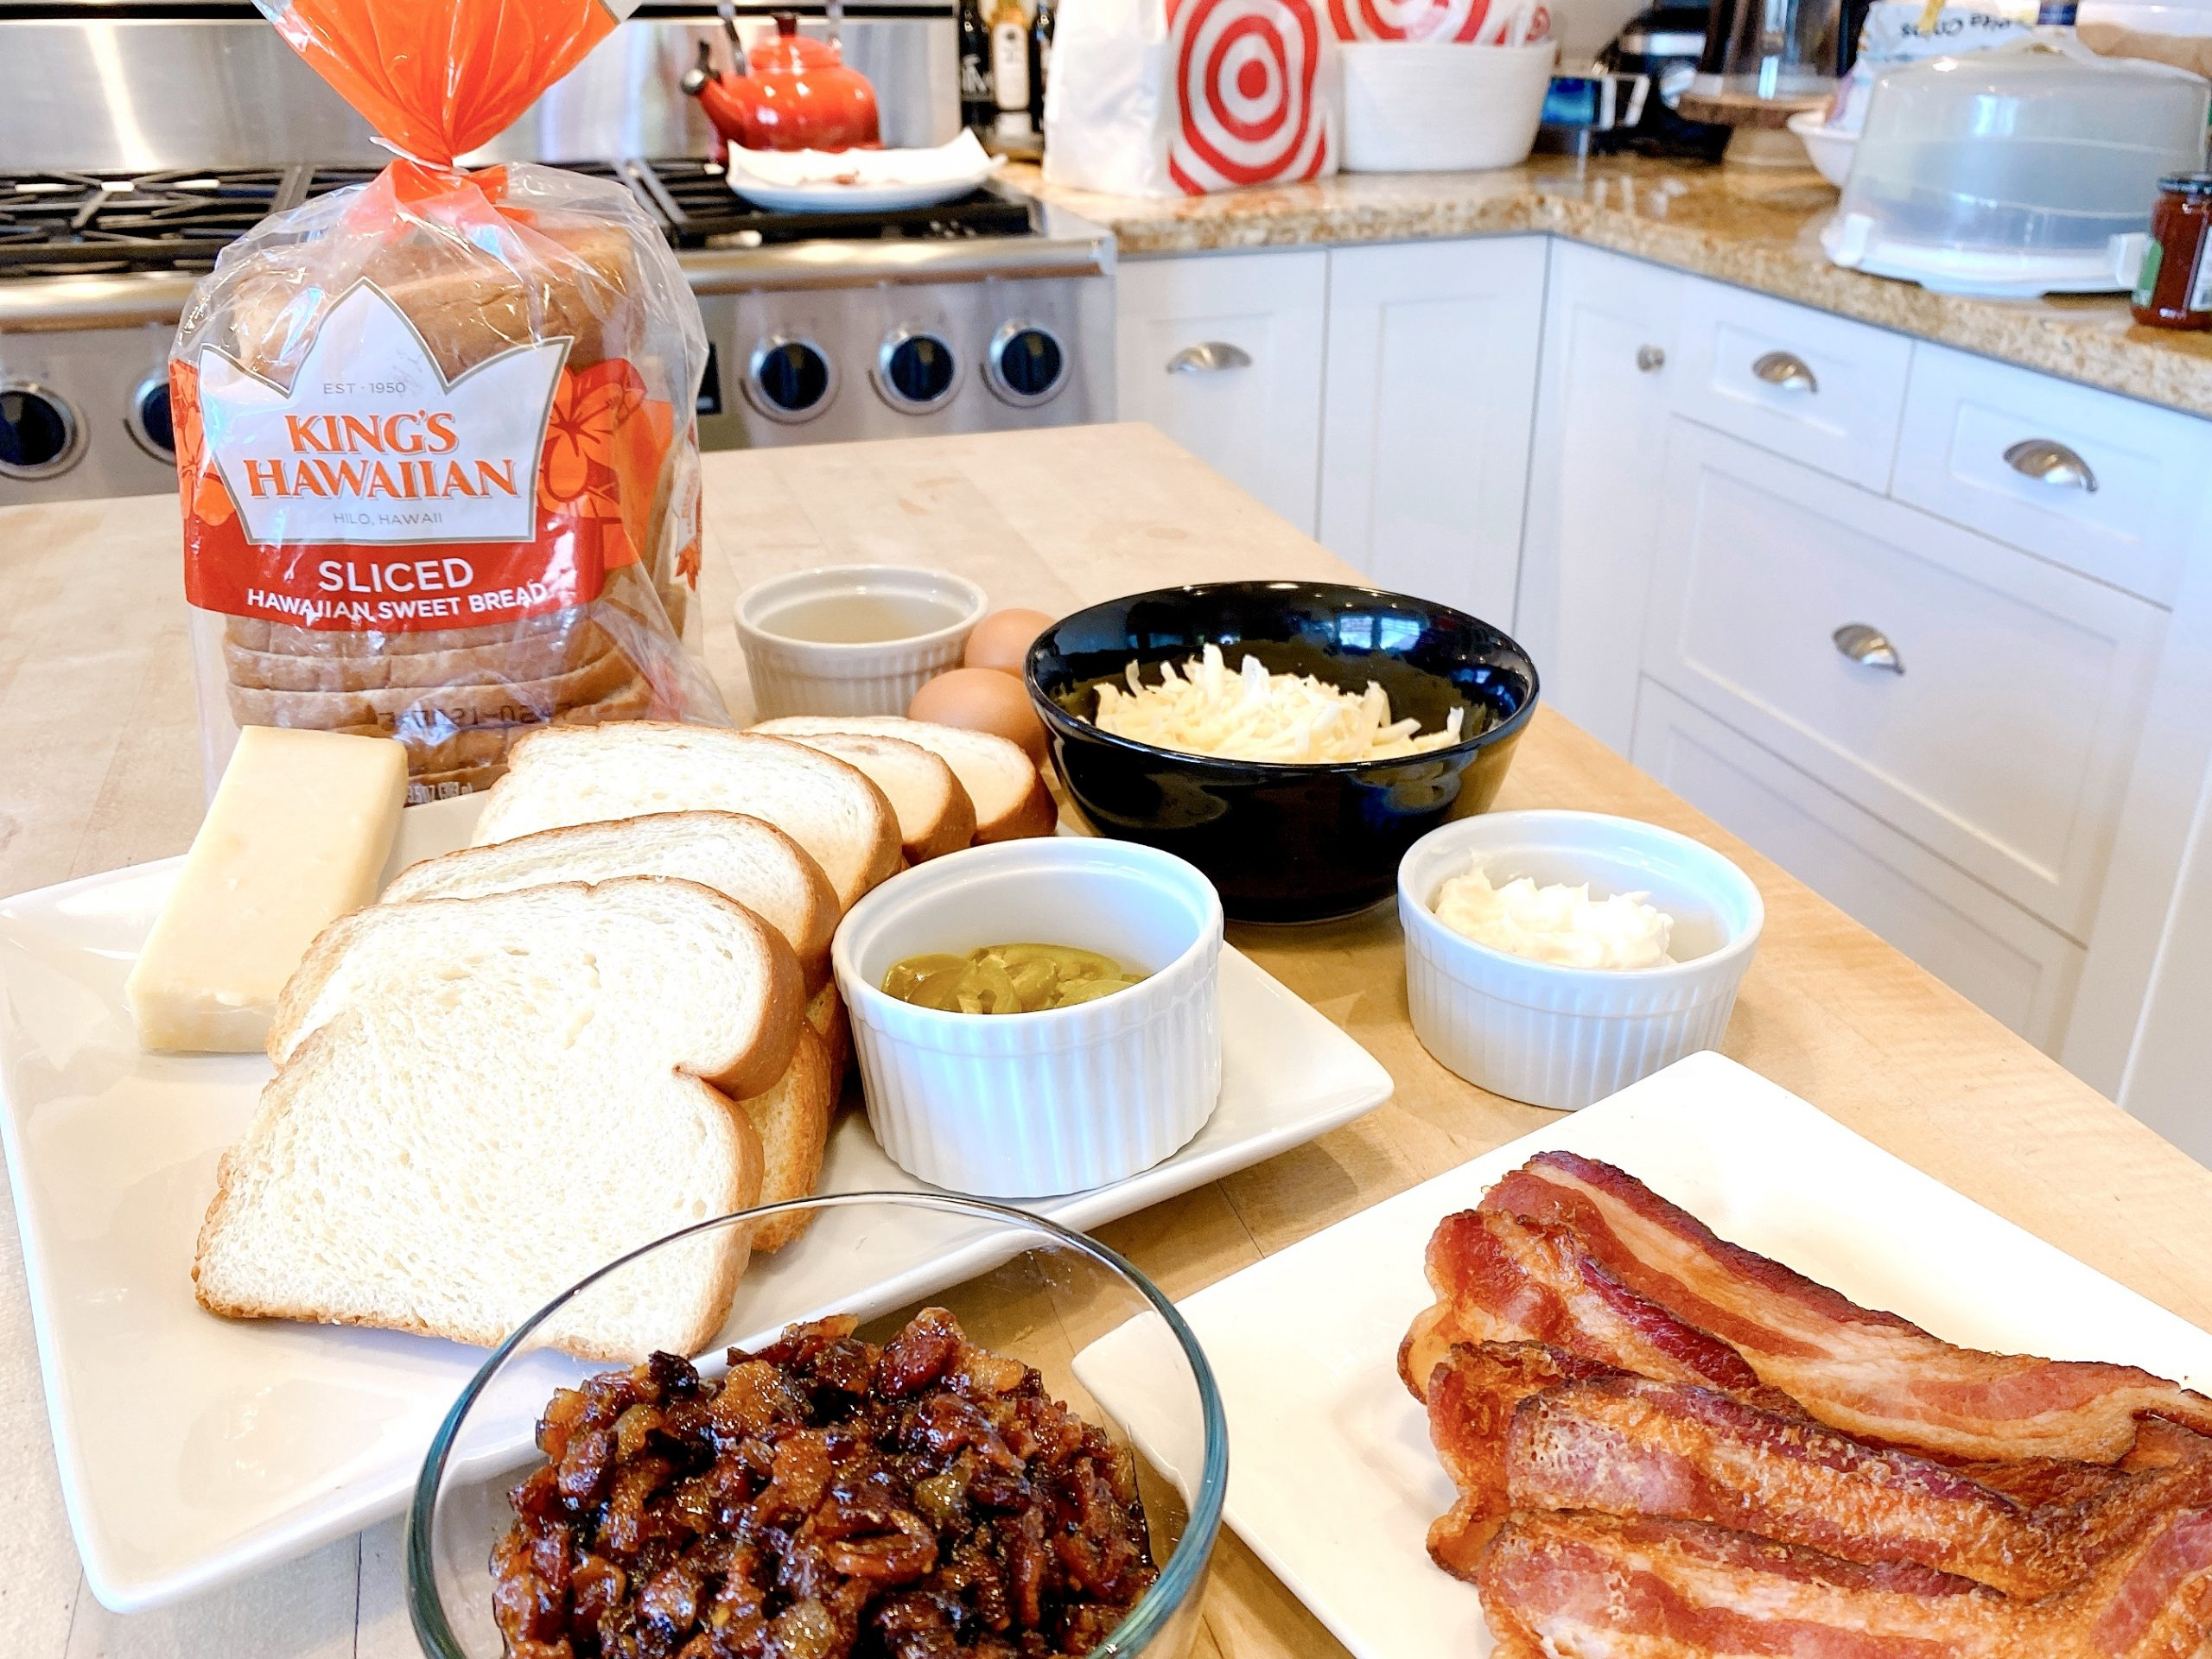 ingredients to make Monte Cristo sandwich including King's Hawaiian Sliced Sweet Bread, cheese, mayonnaise, mustard, bacon jam and bacon